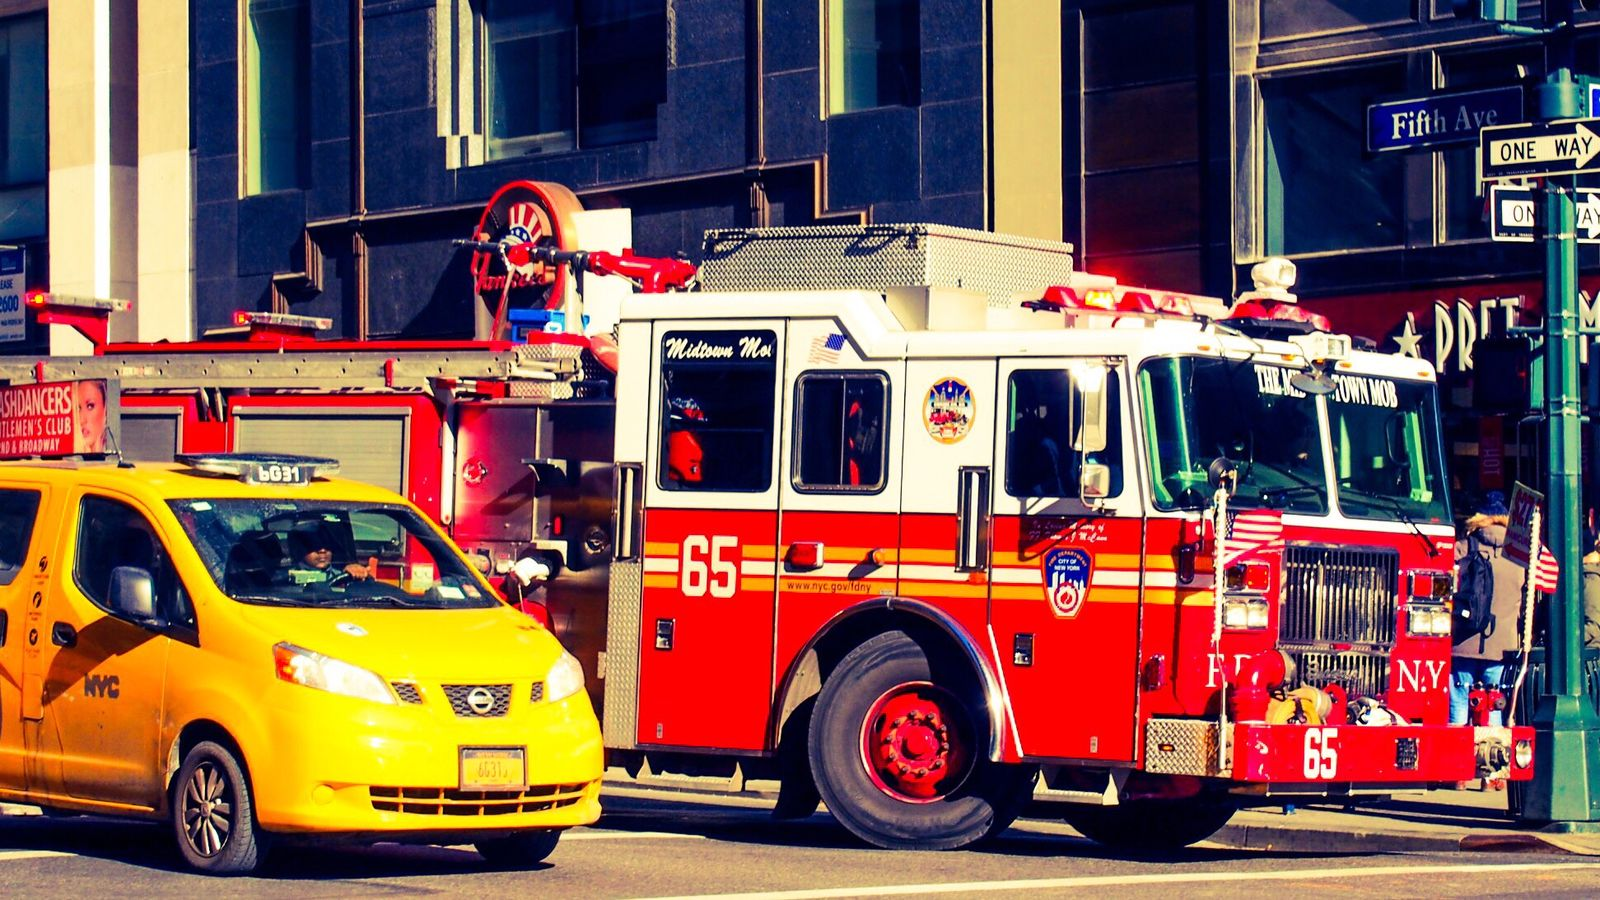 Iconic New York cab and fire truck New York City Travel Travel Photography Firetruck NYC CAB Taxi Firemen Emergency